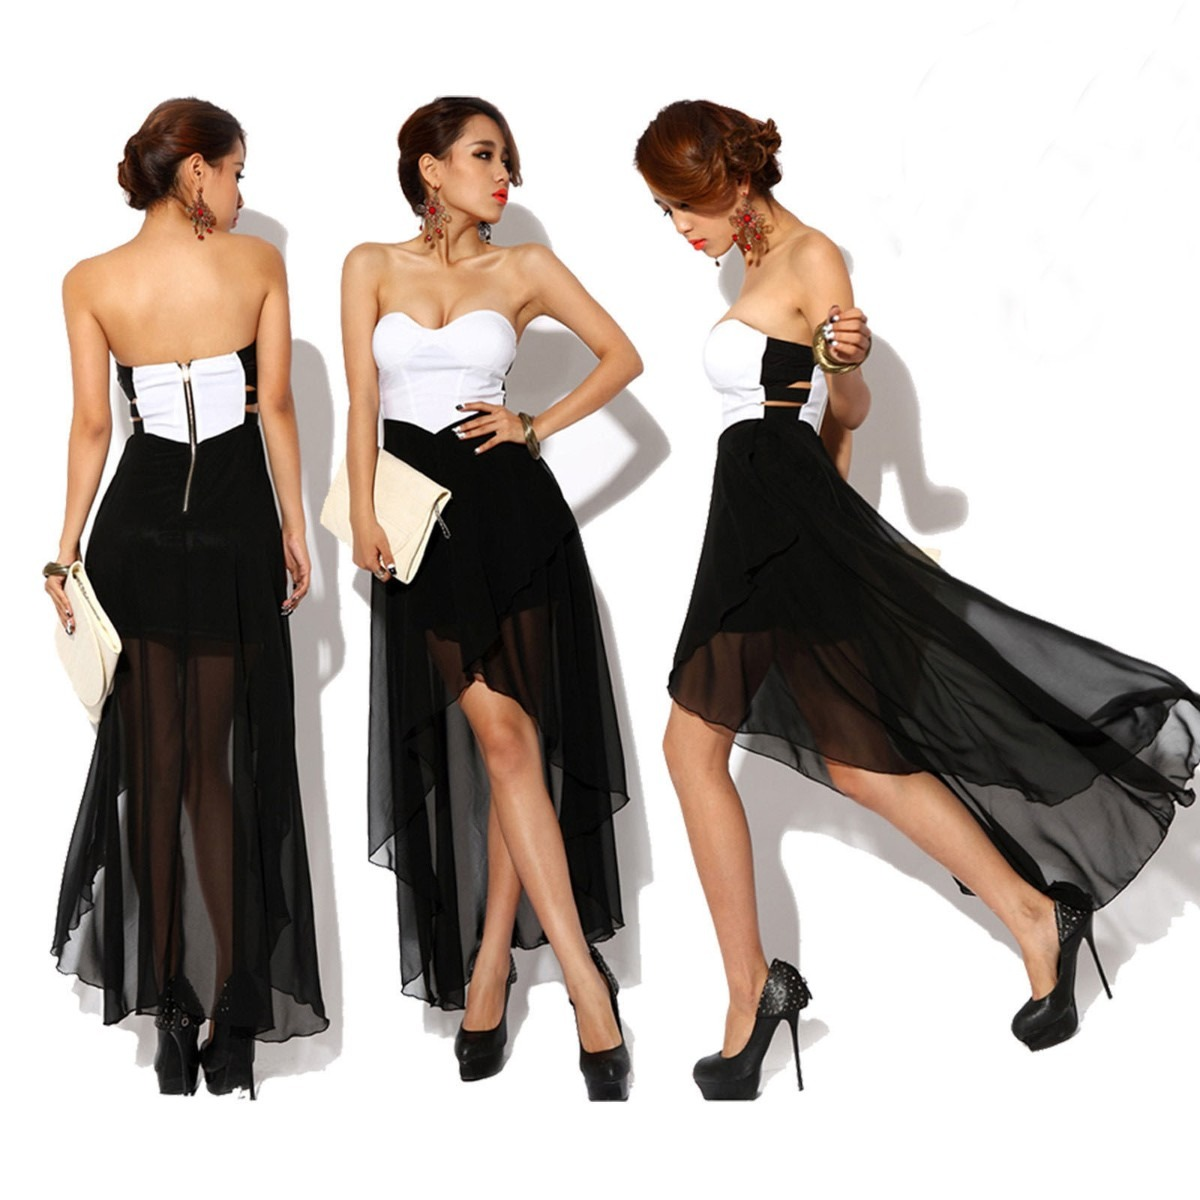 Vestidos blanco y negro de fiesta | Vestidos de fiesta